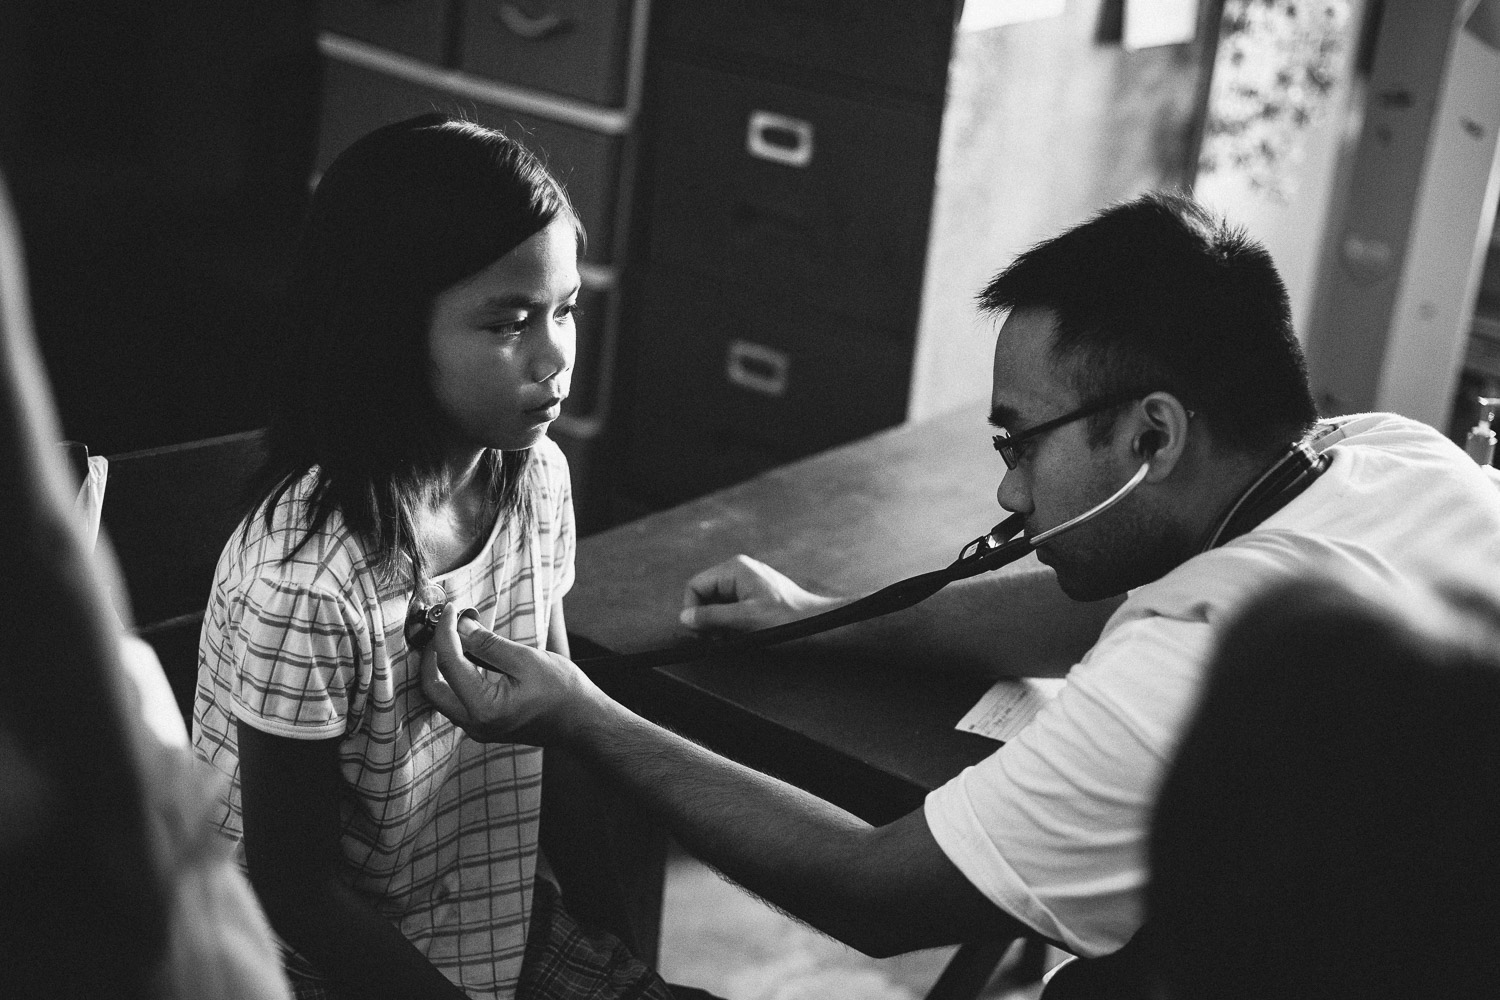 A young girl is having her lungs checked. Village of Dulag, Leyte Province, Philippines